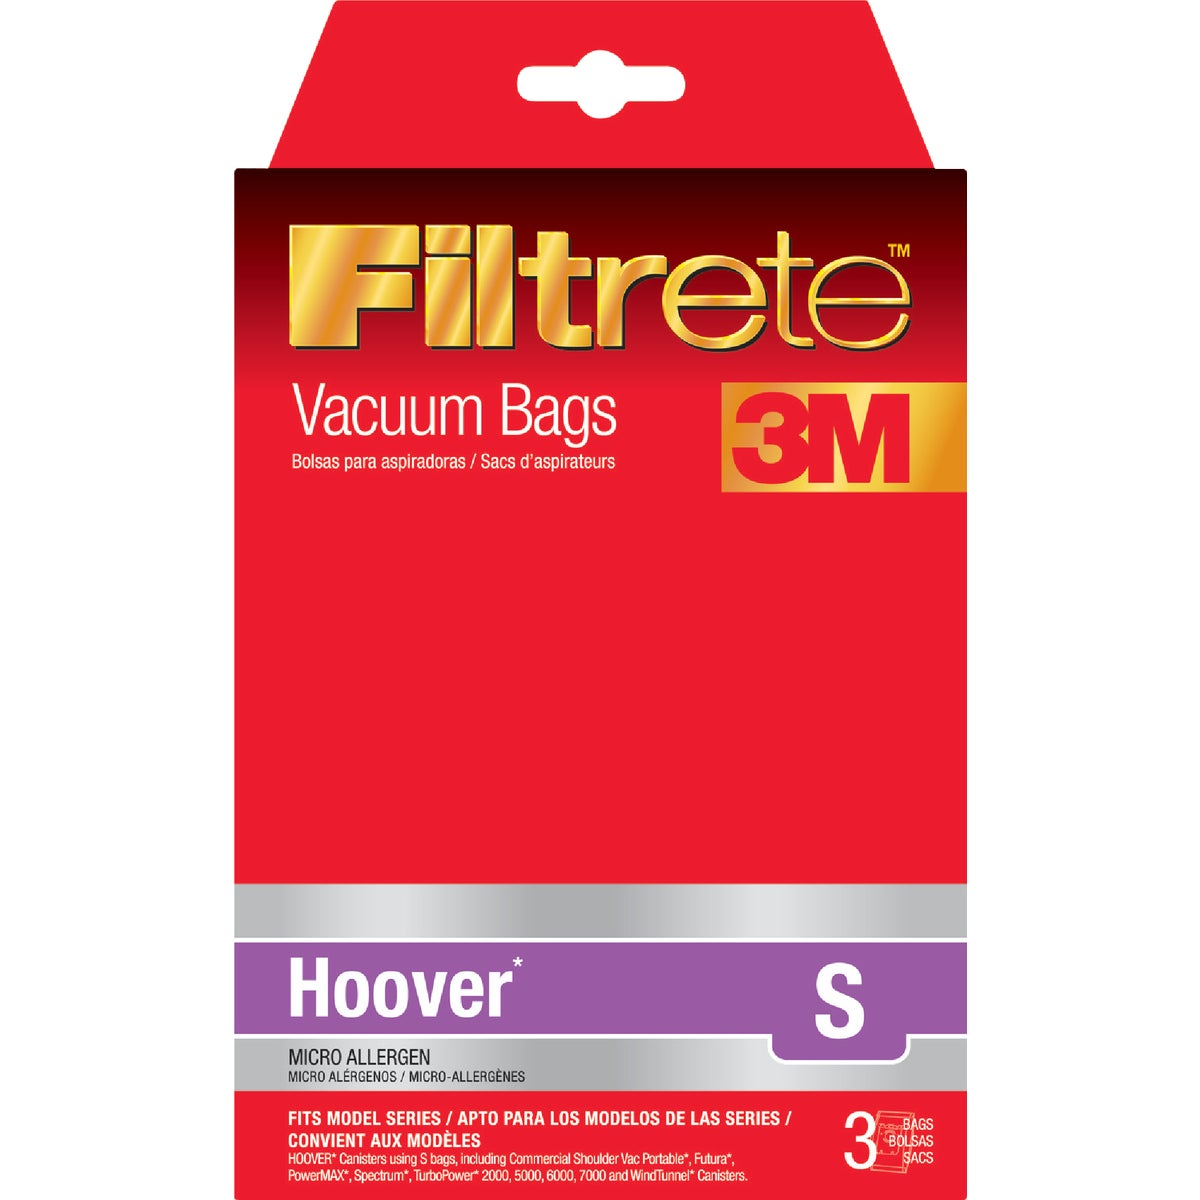 HOOVER S VACUUM BAG - 64705A-6 by Electrolux Home Care